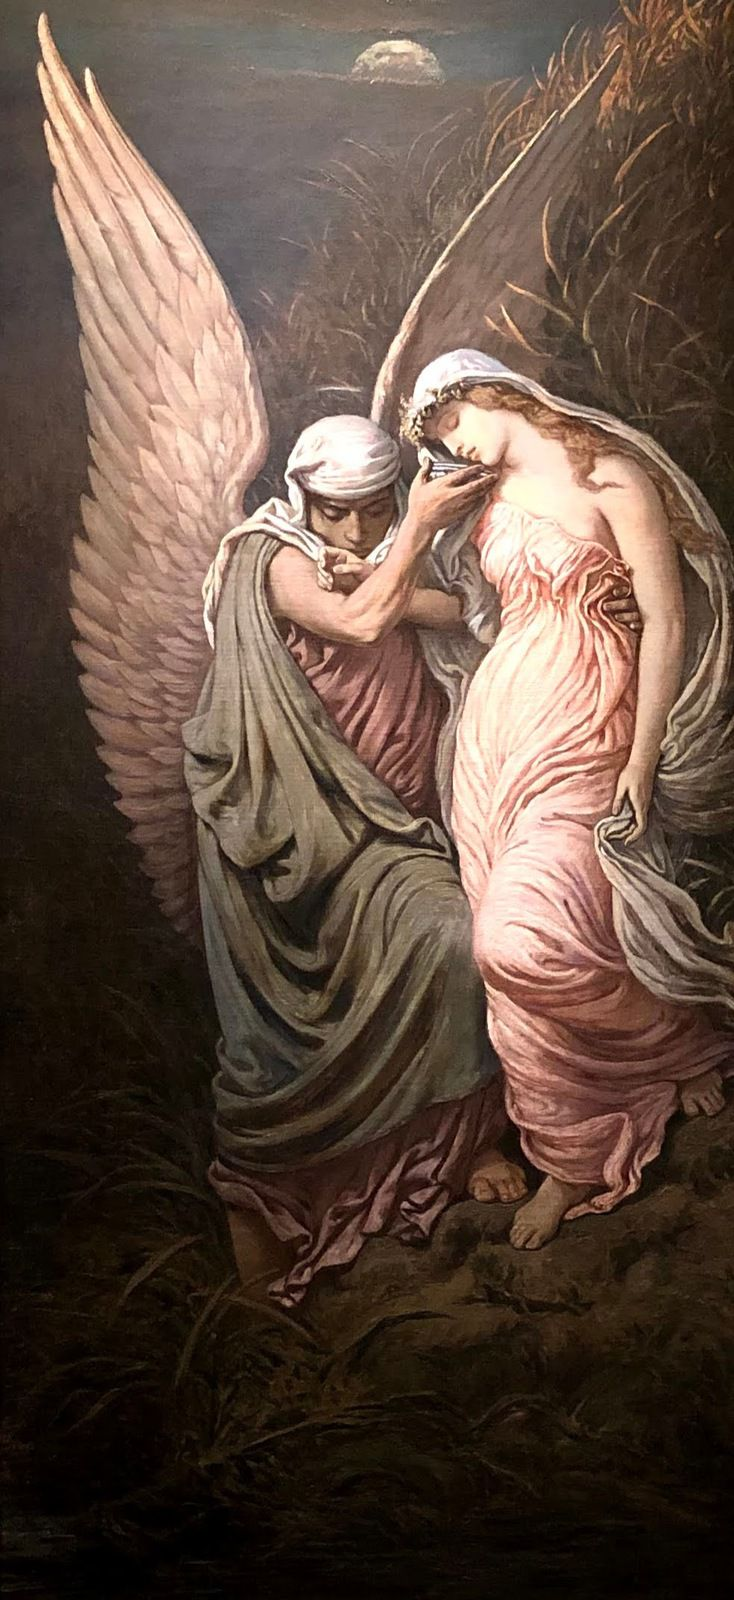 The Cup of Death, Elihu Vedder, 1885